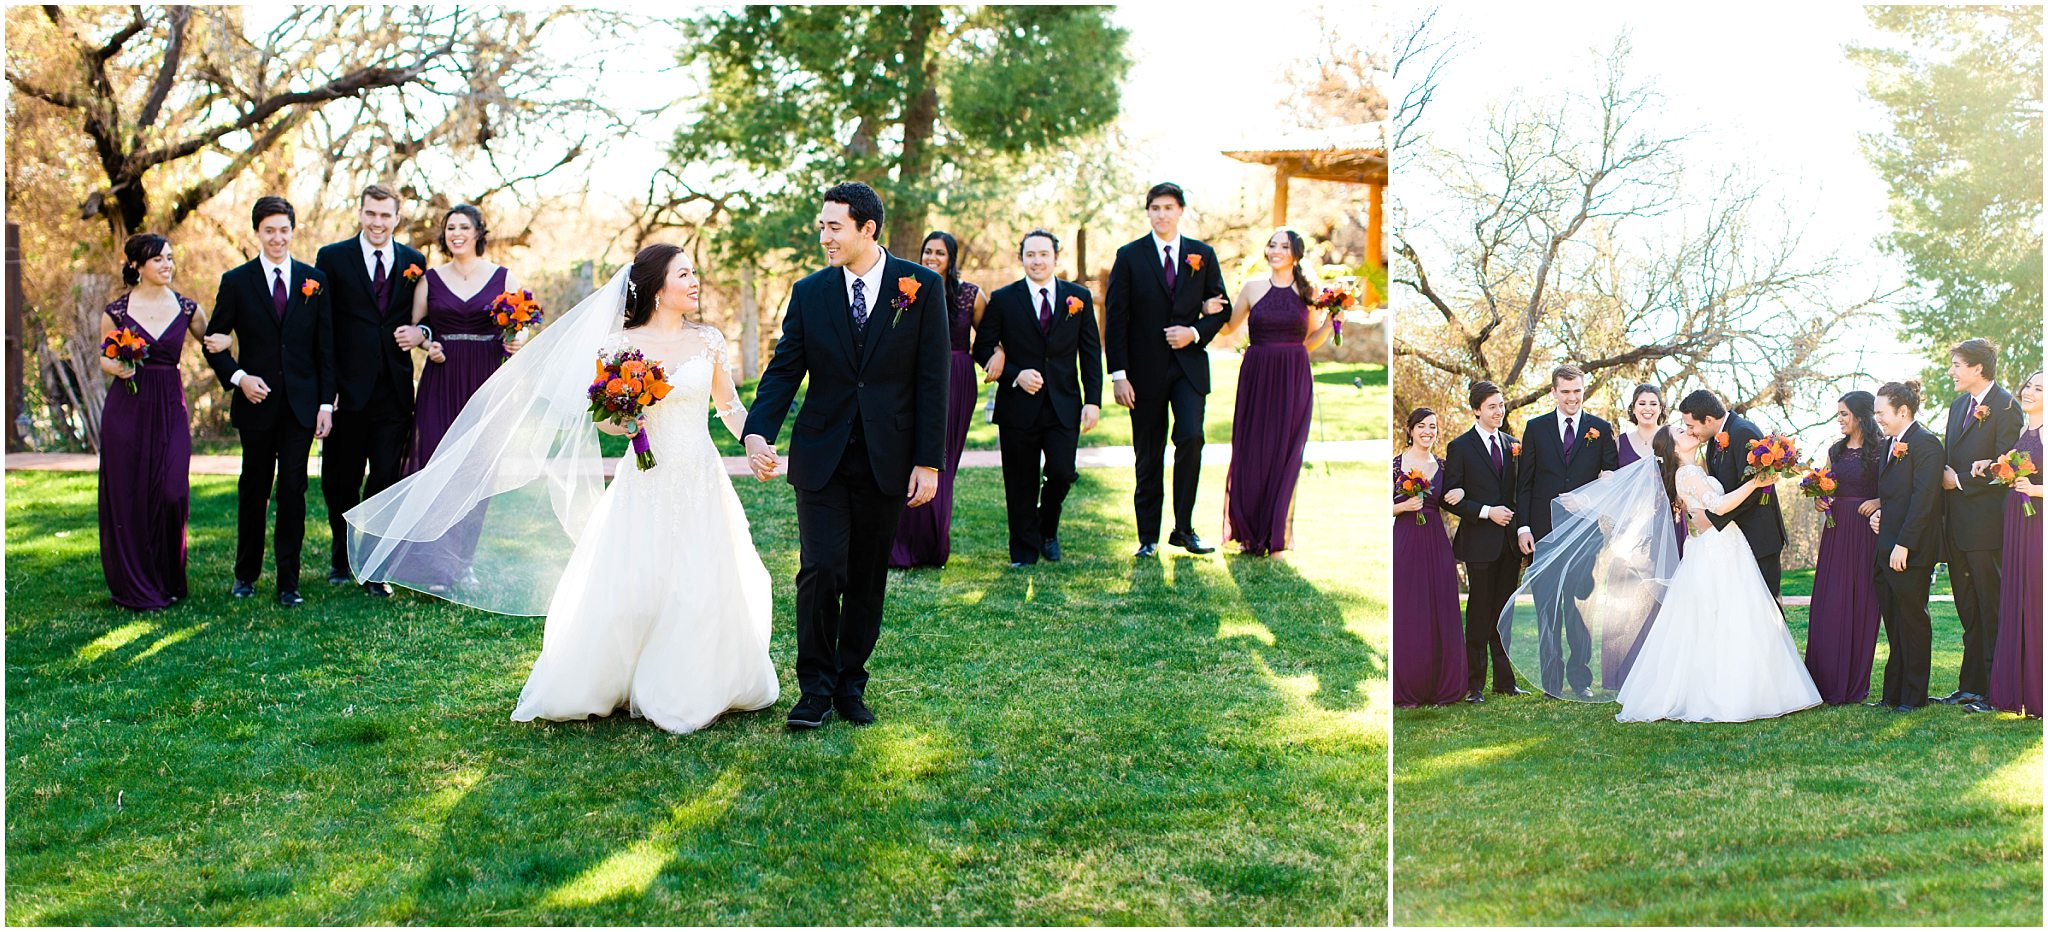 Vail Arizona Wedding Photographer